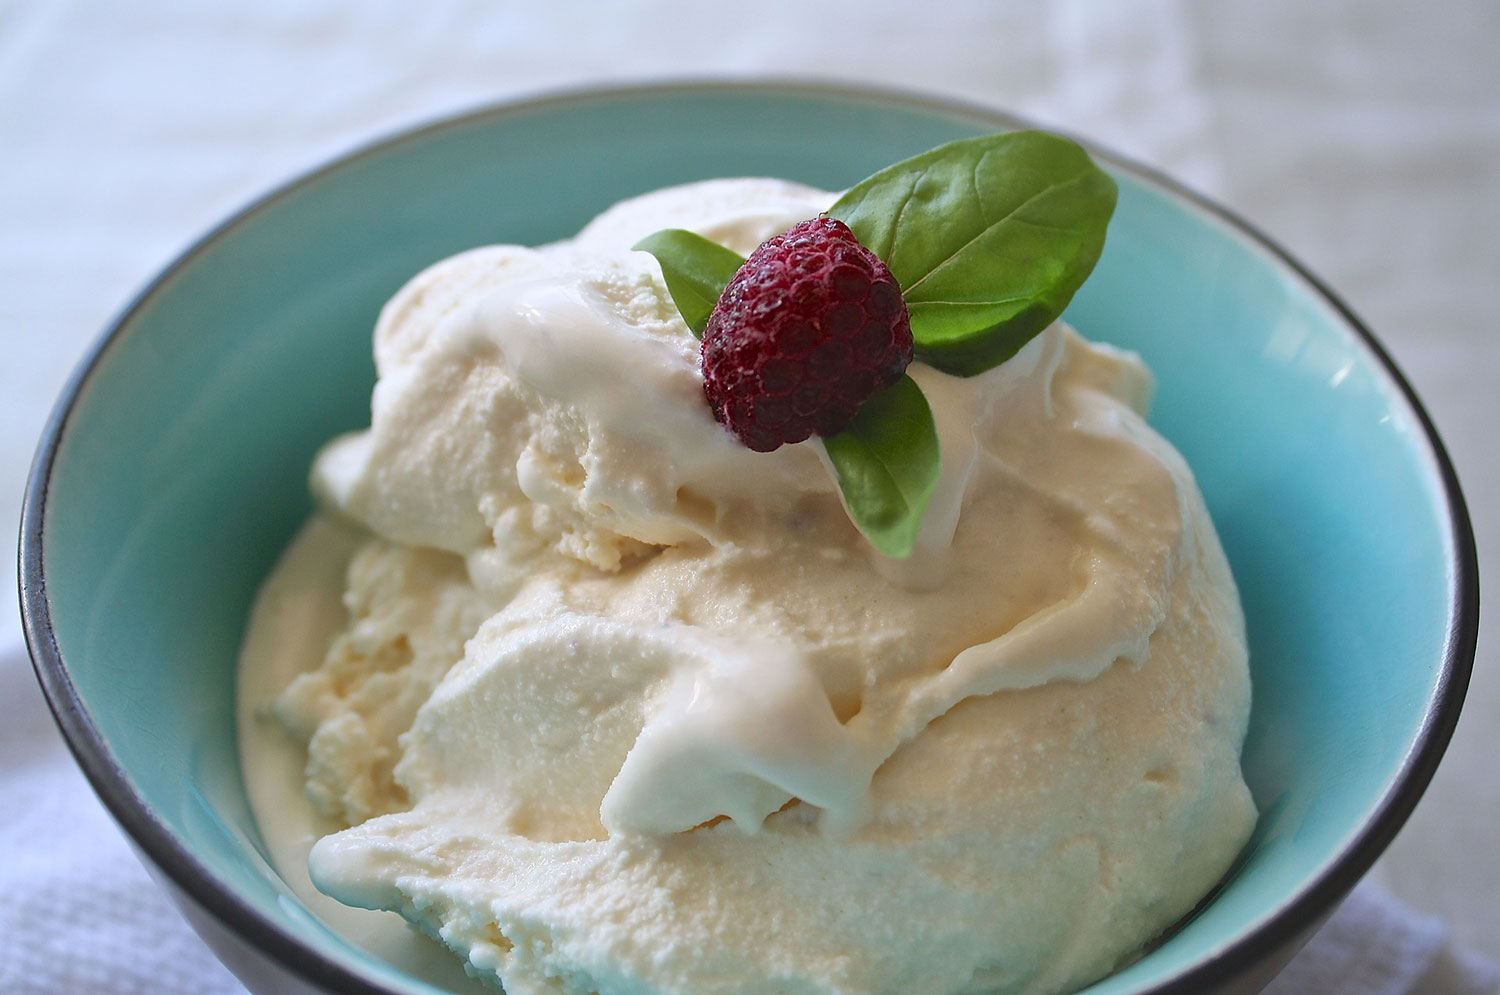 Recipe: Farm fresh no churn vanilla ice cream